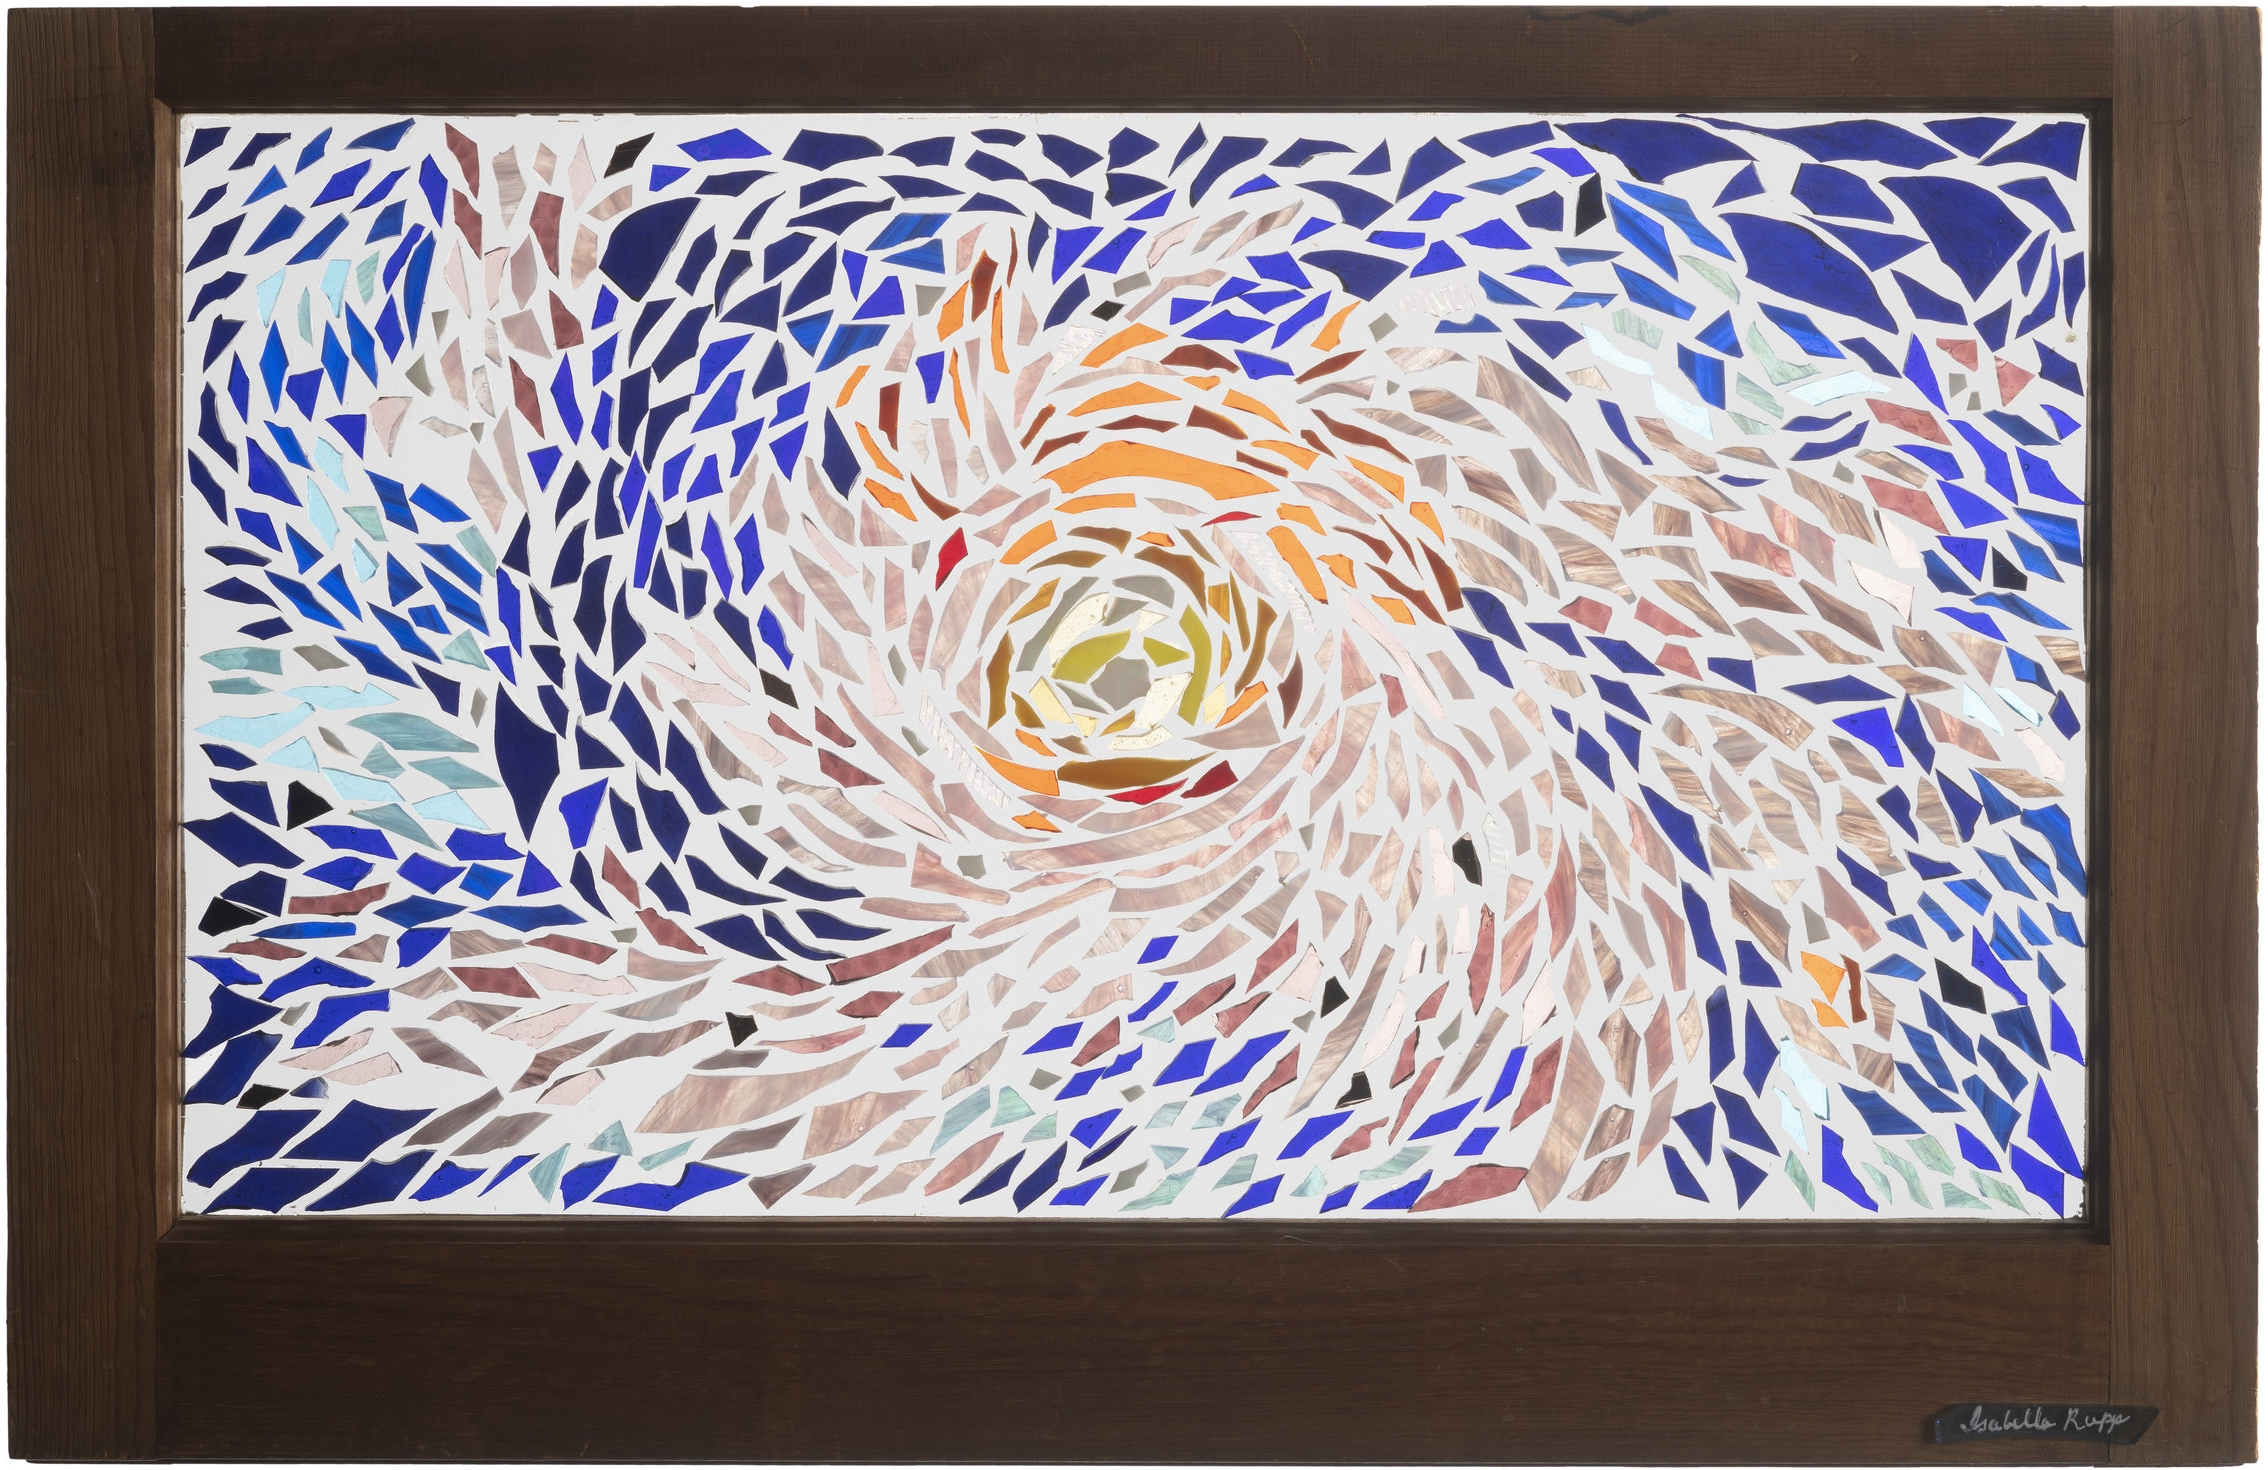 Milky Way, 2001. Glass, 17½ x 28 in.   50-year old wood frame window from 1805 farmhouse in Catskill Mountains, NY